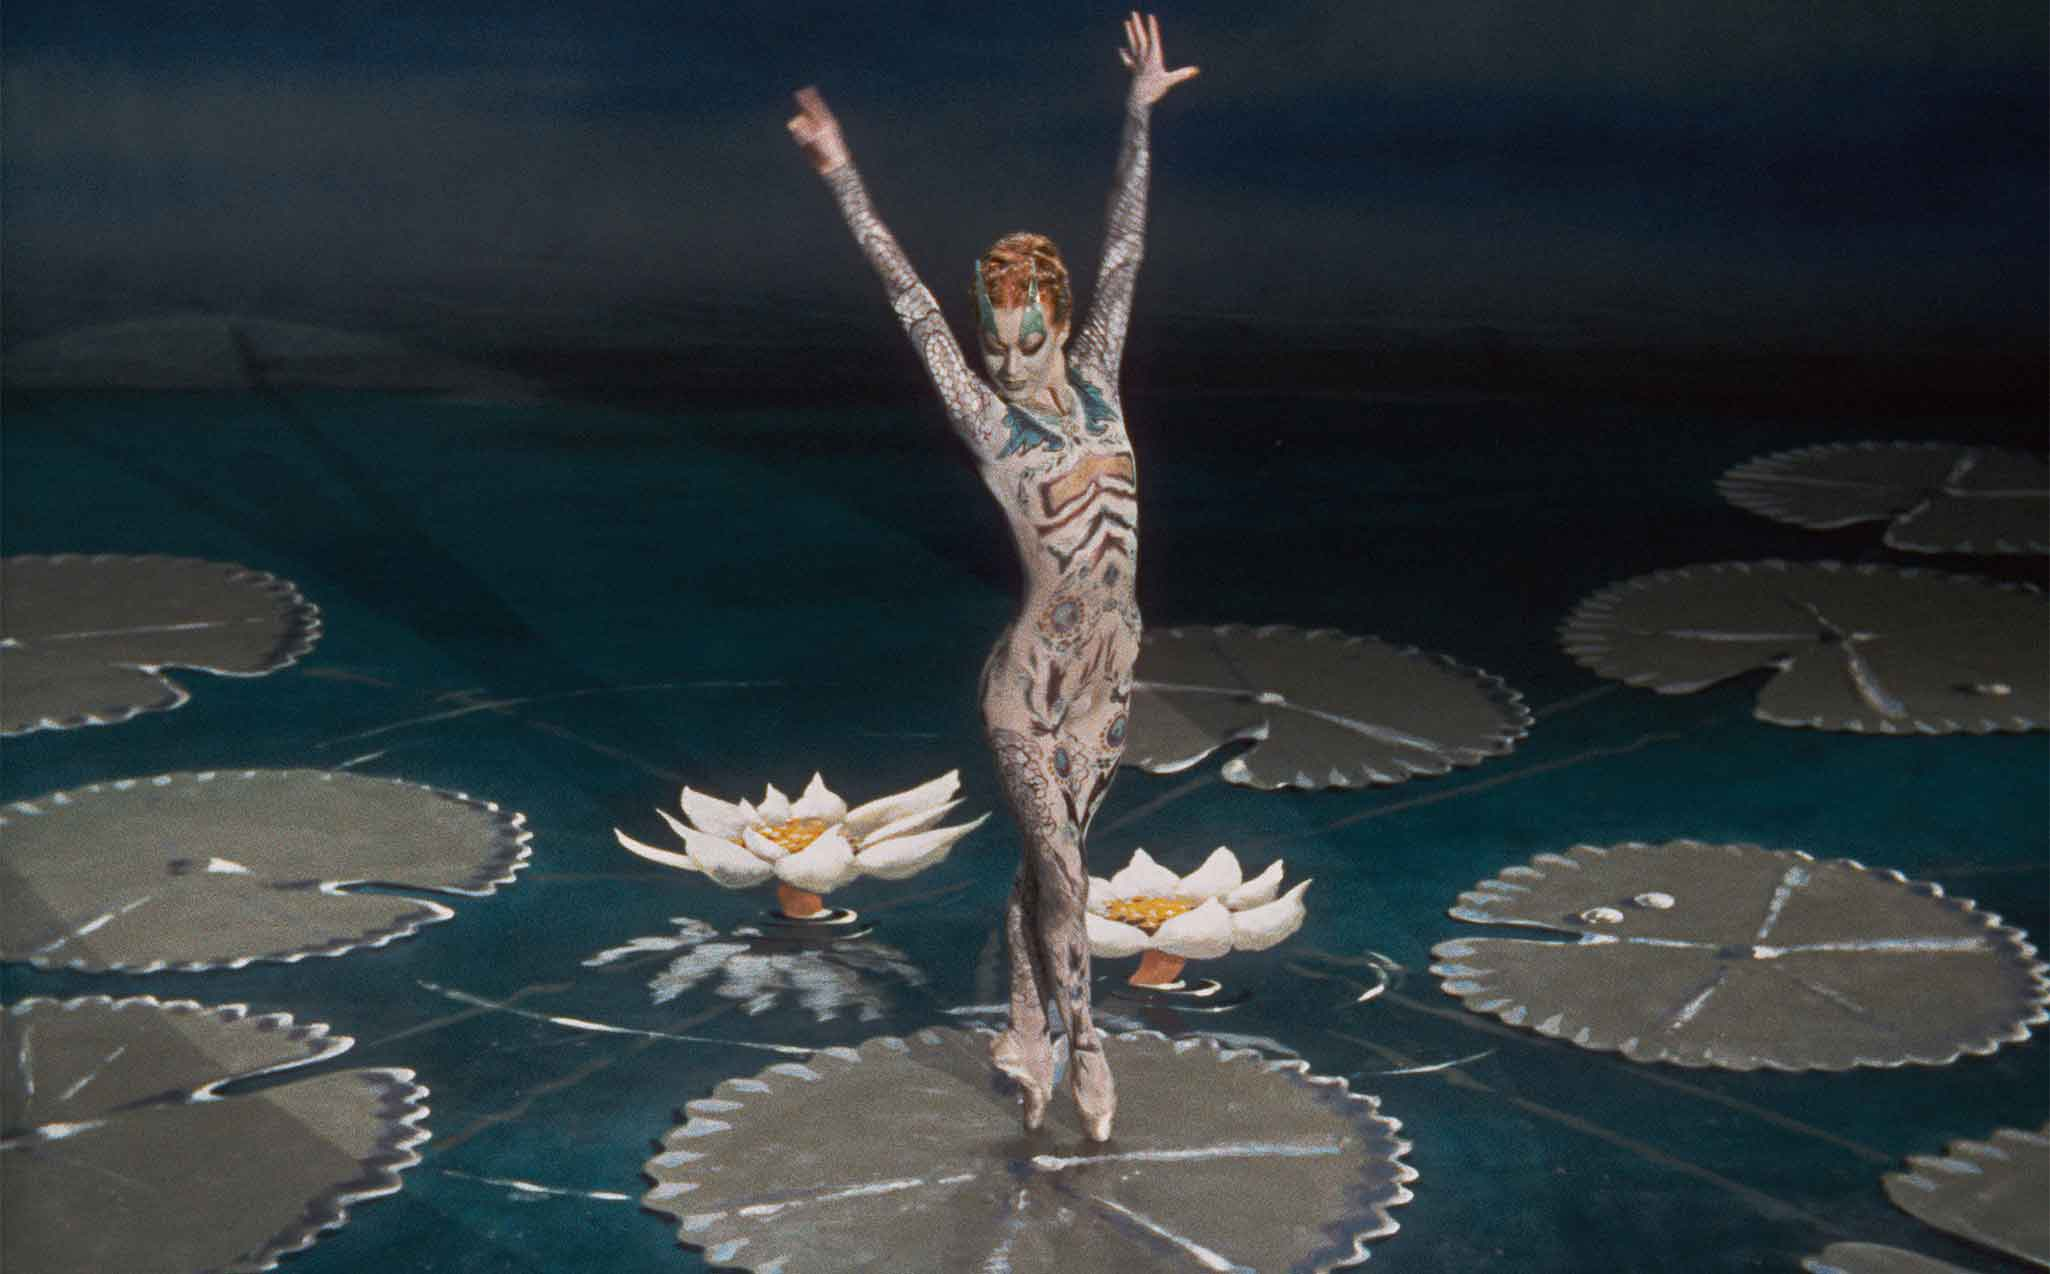 Moira Shearer dancing in the prologue of The Tales of Hoffmann (1951)